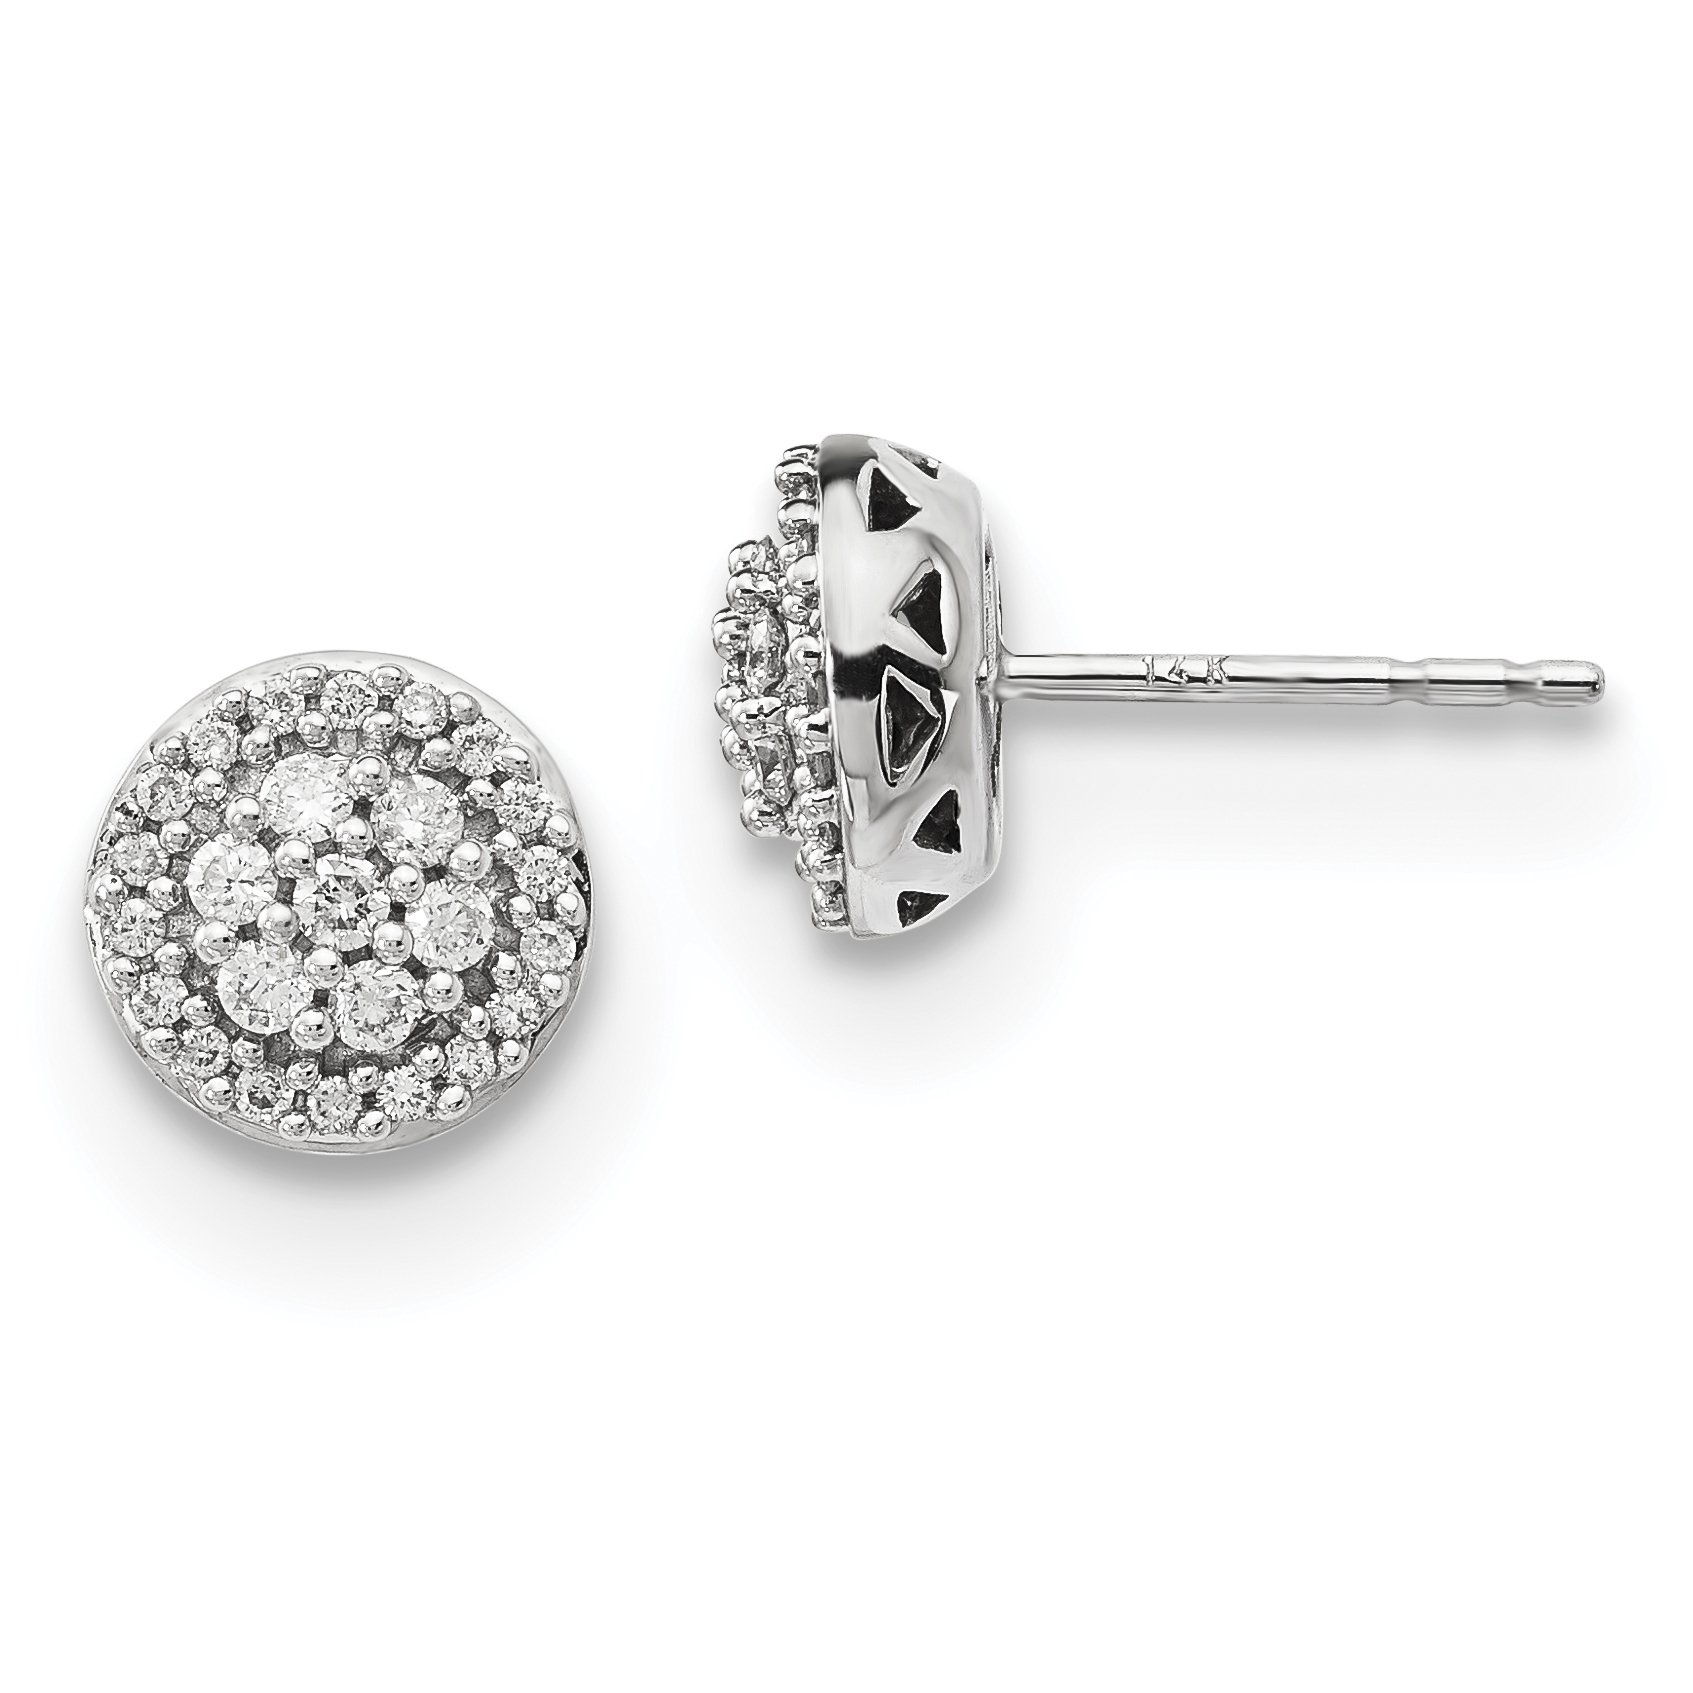 ICE CARATS 14k White Gold Diamond Post Stud Ball Button Earrings Fine Jewelry Gift Set For Women Heart